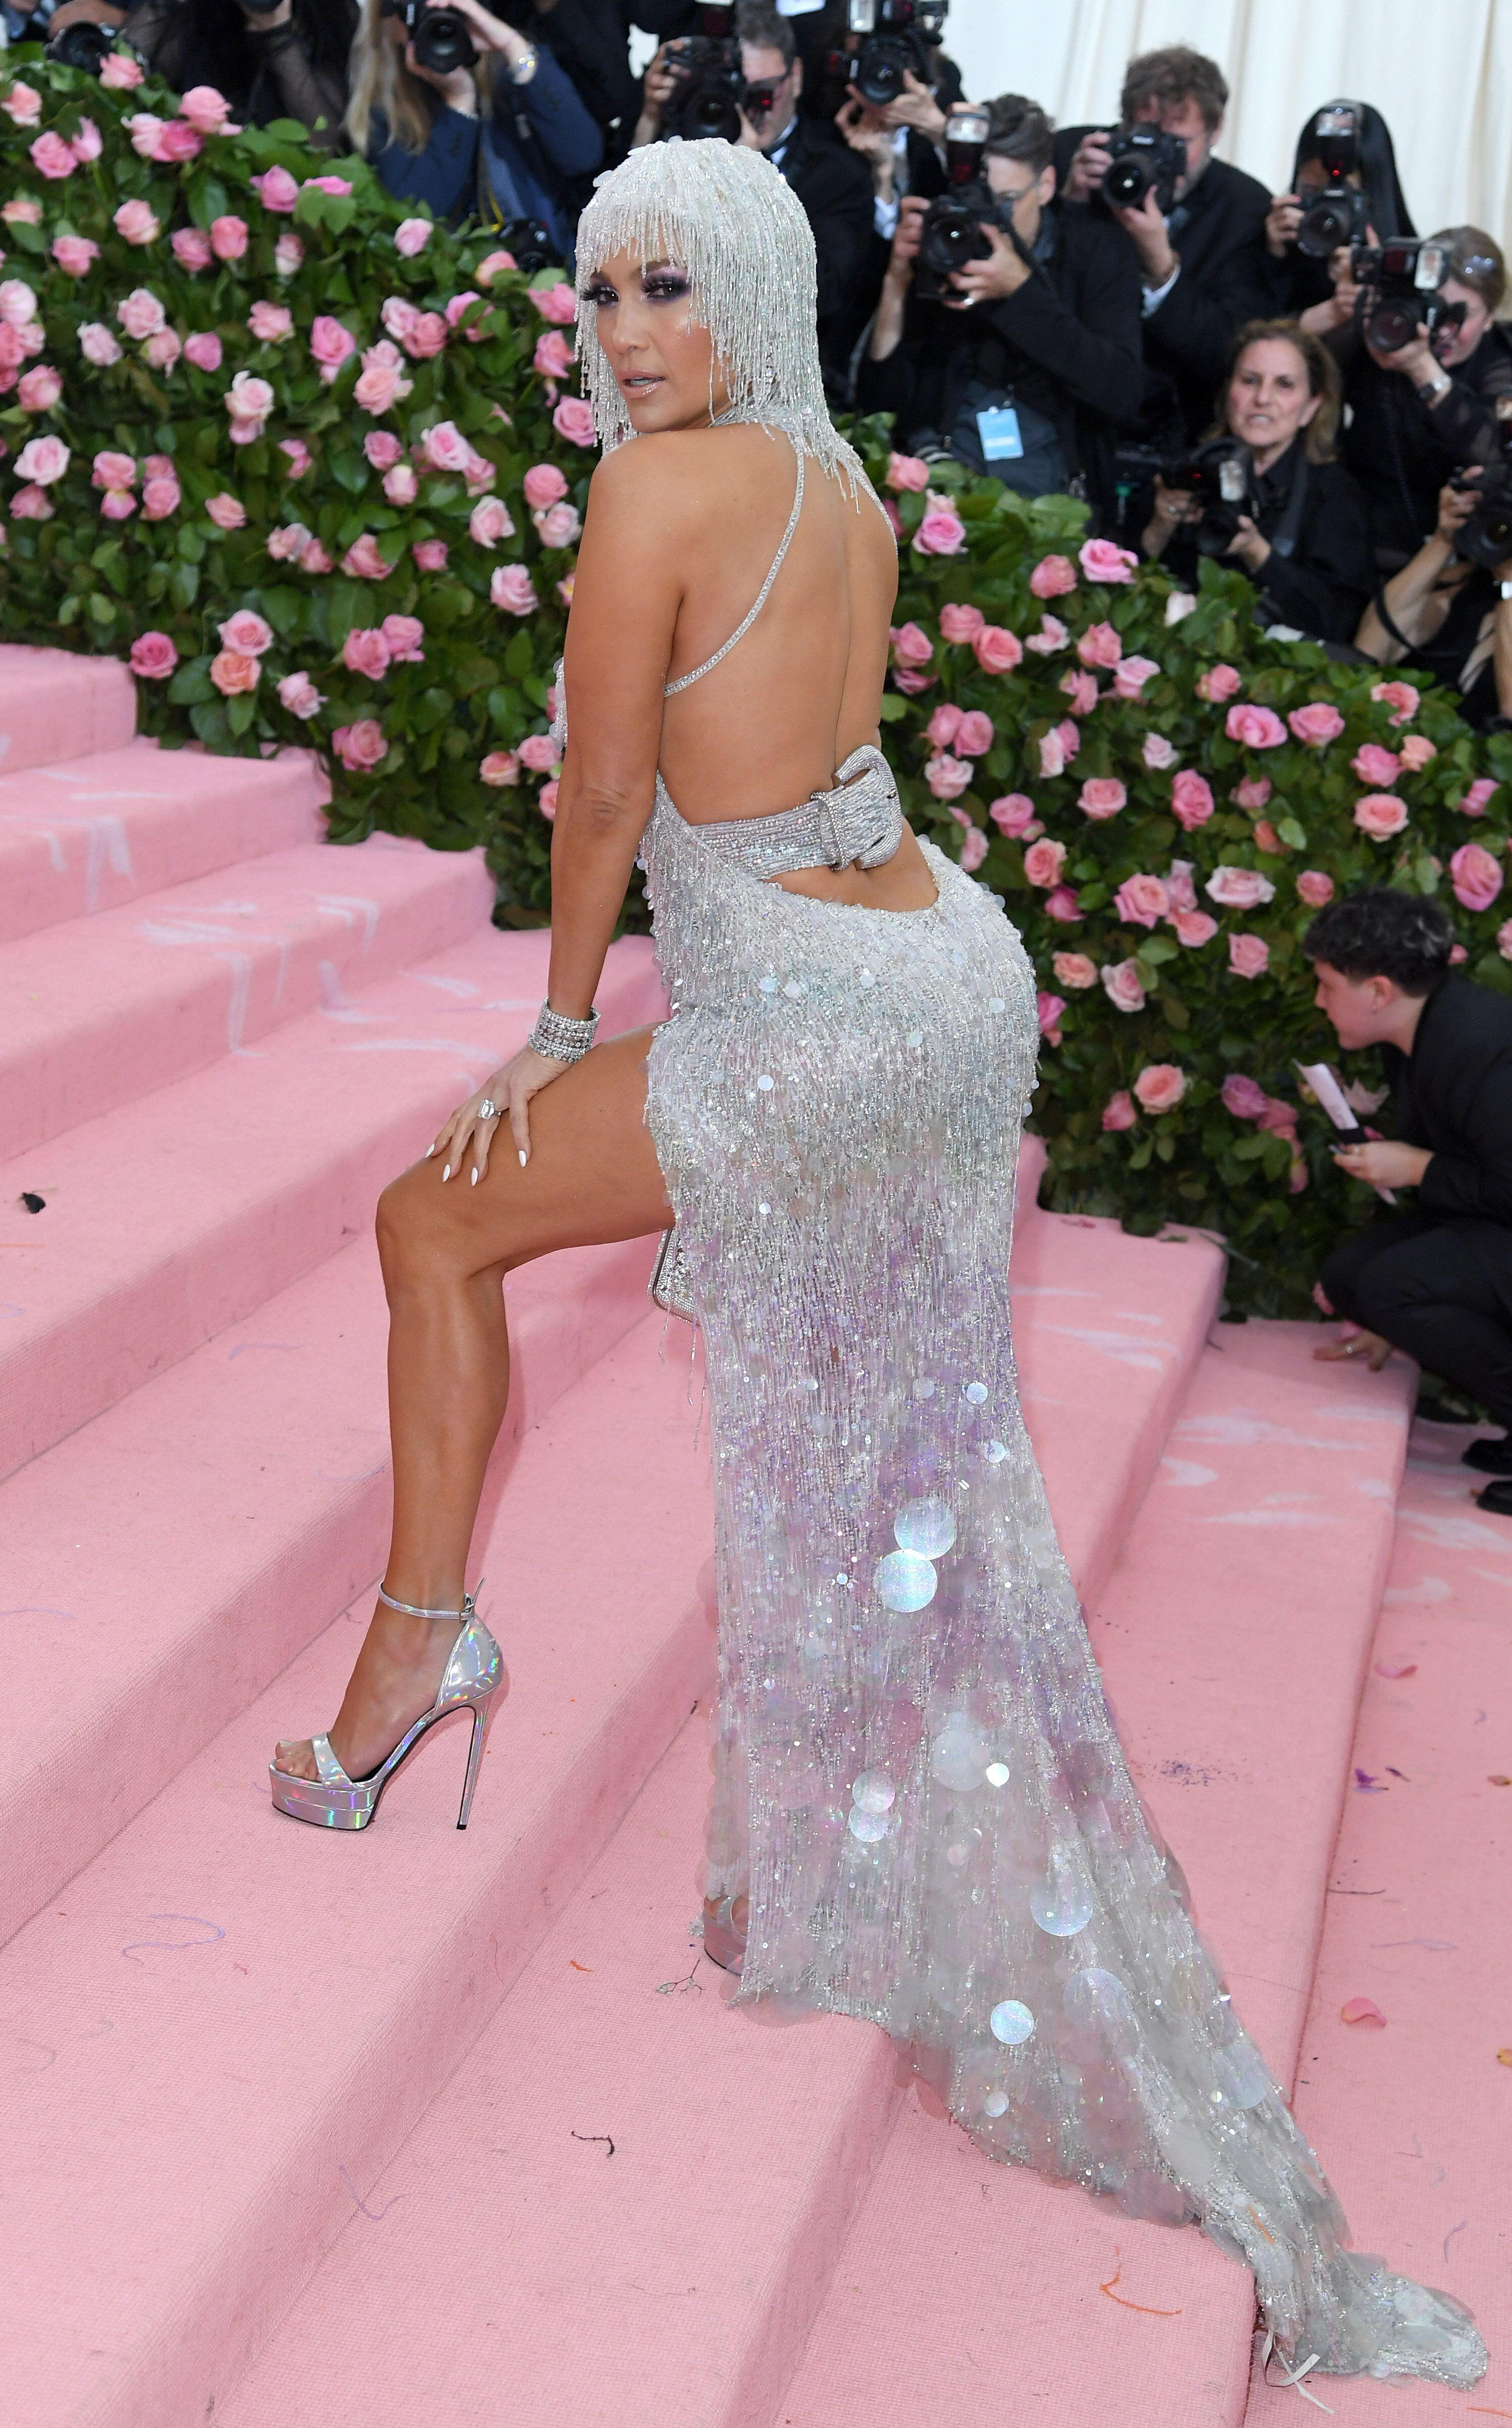 NEW YORK, NEW YORK - MAY 06: Jennifer Lopez arrives for the 2019 Met Gala celebrating Camp: Notes on Fashion at The Metropolitan Museum of Art on May 06, 2019 in New York City. (Photo by Karwai Tang/Getty Images)